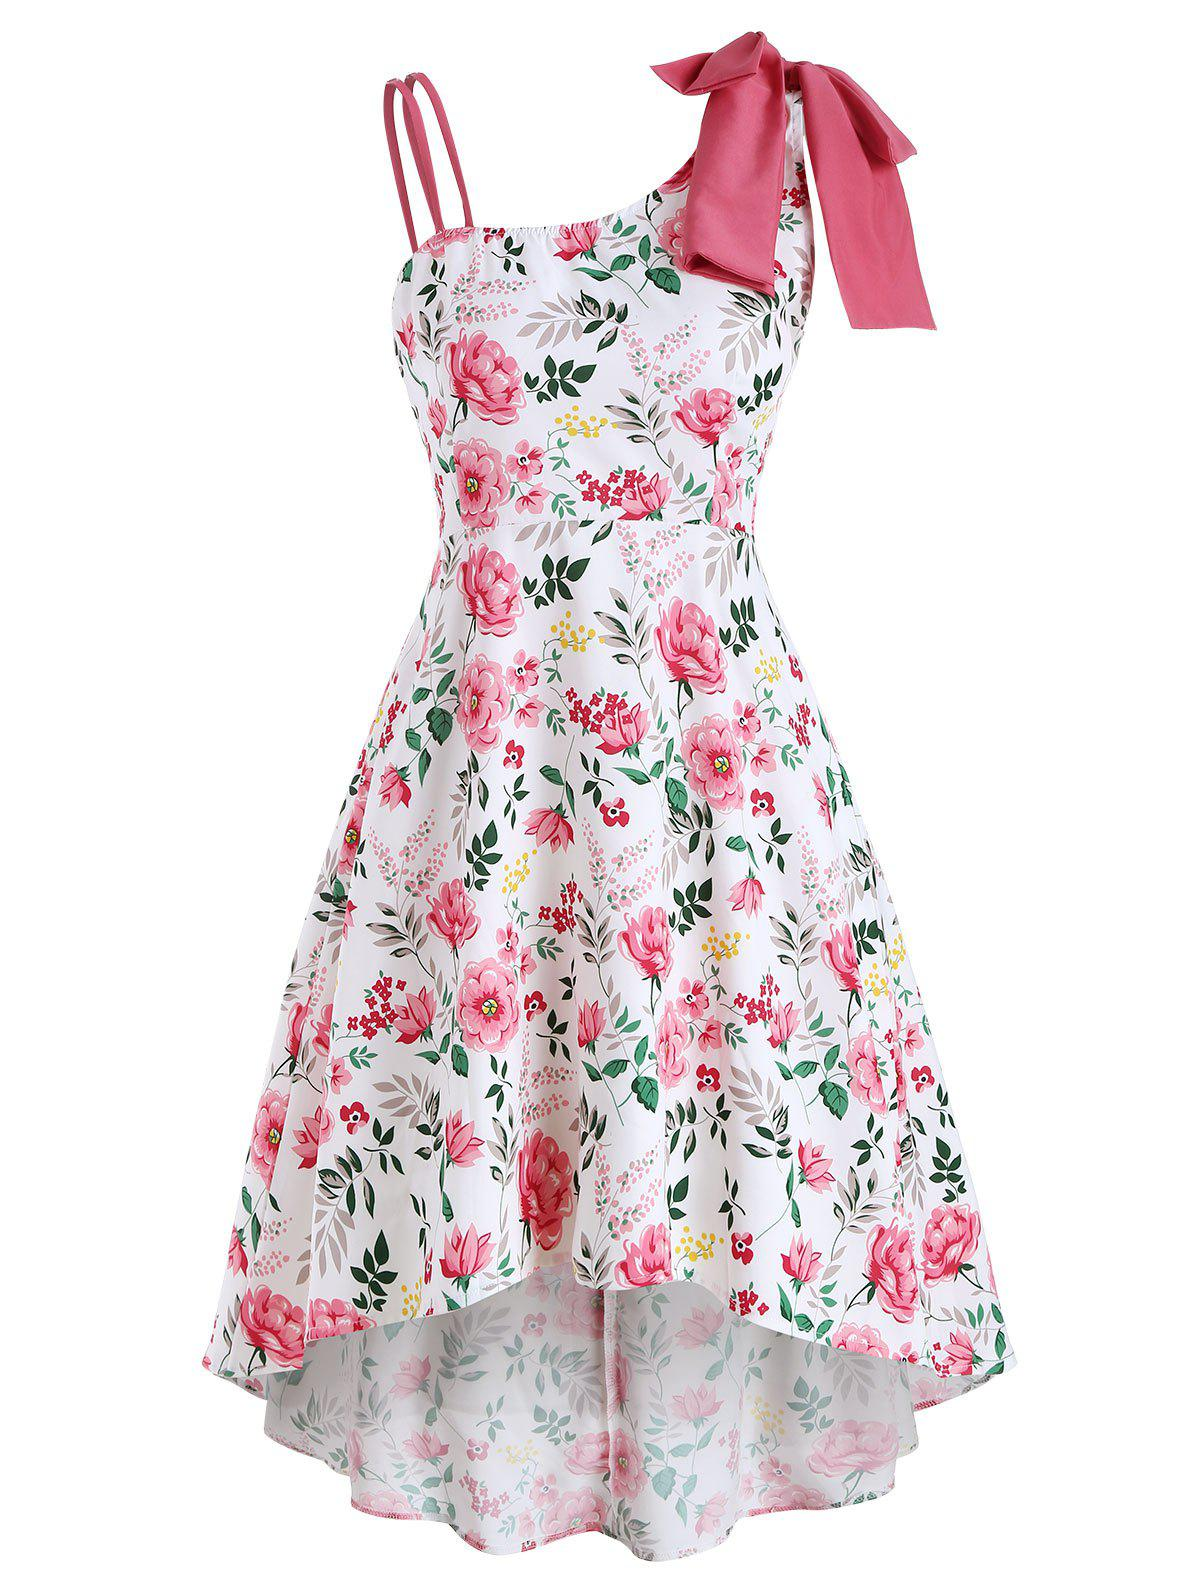 Discount Asymmetrical Bowknot Floral High Low Sleeveless Dress